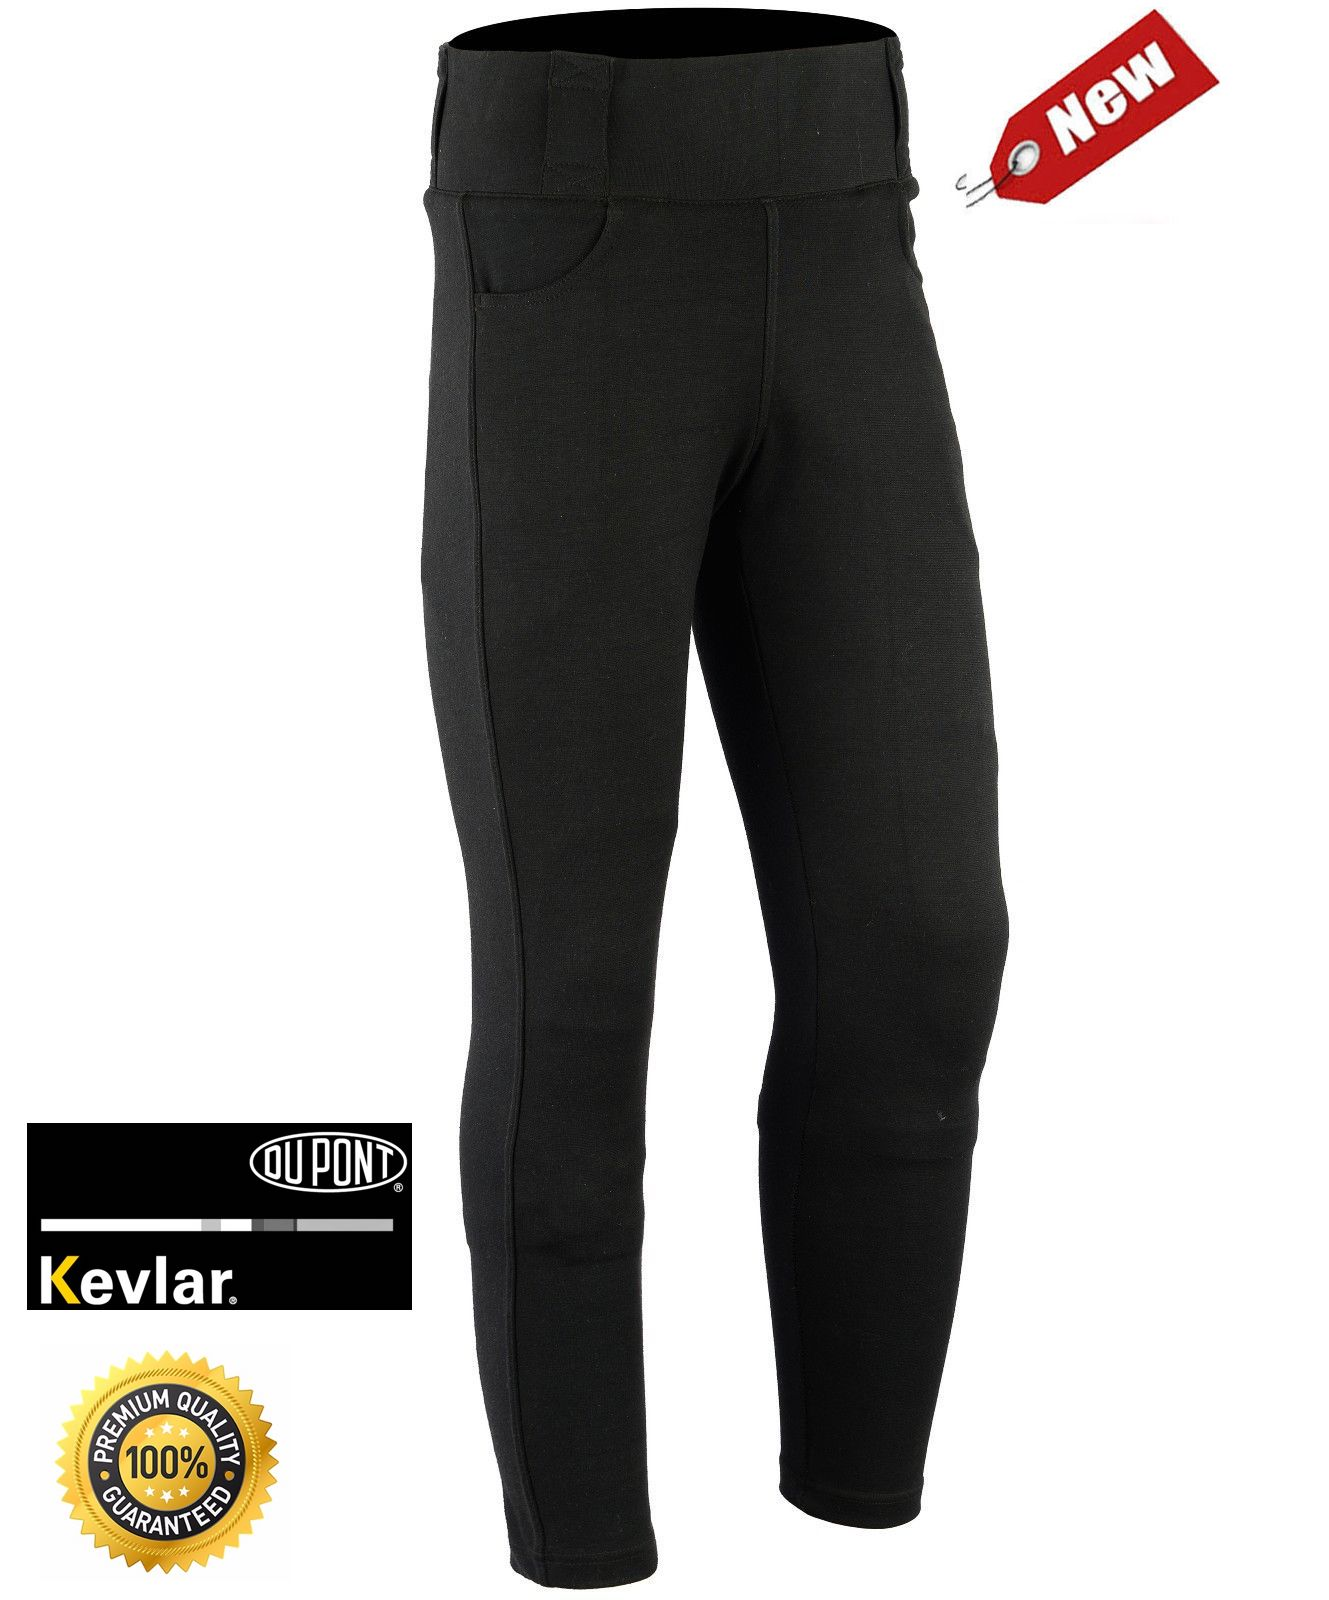 f6cf873cdd360 MRT 'VB-1916' Ladies Motorcycle Leggings with full Kevlar® Lining - The  Rider Team